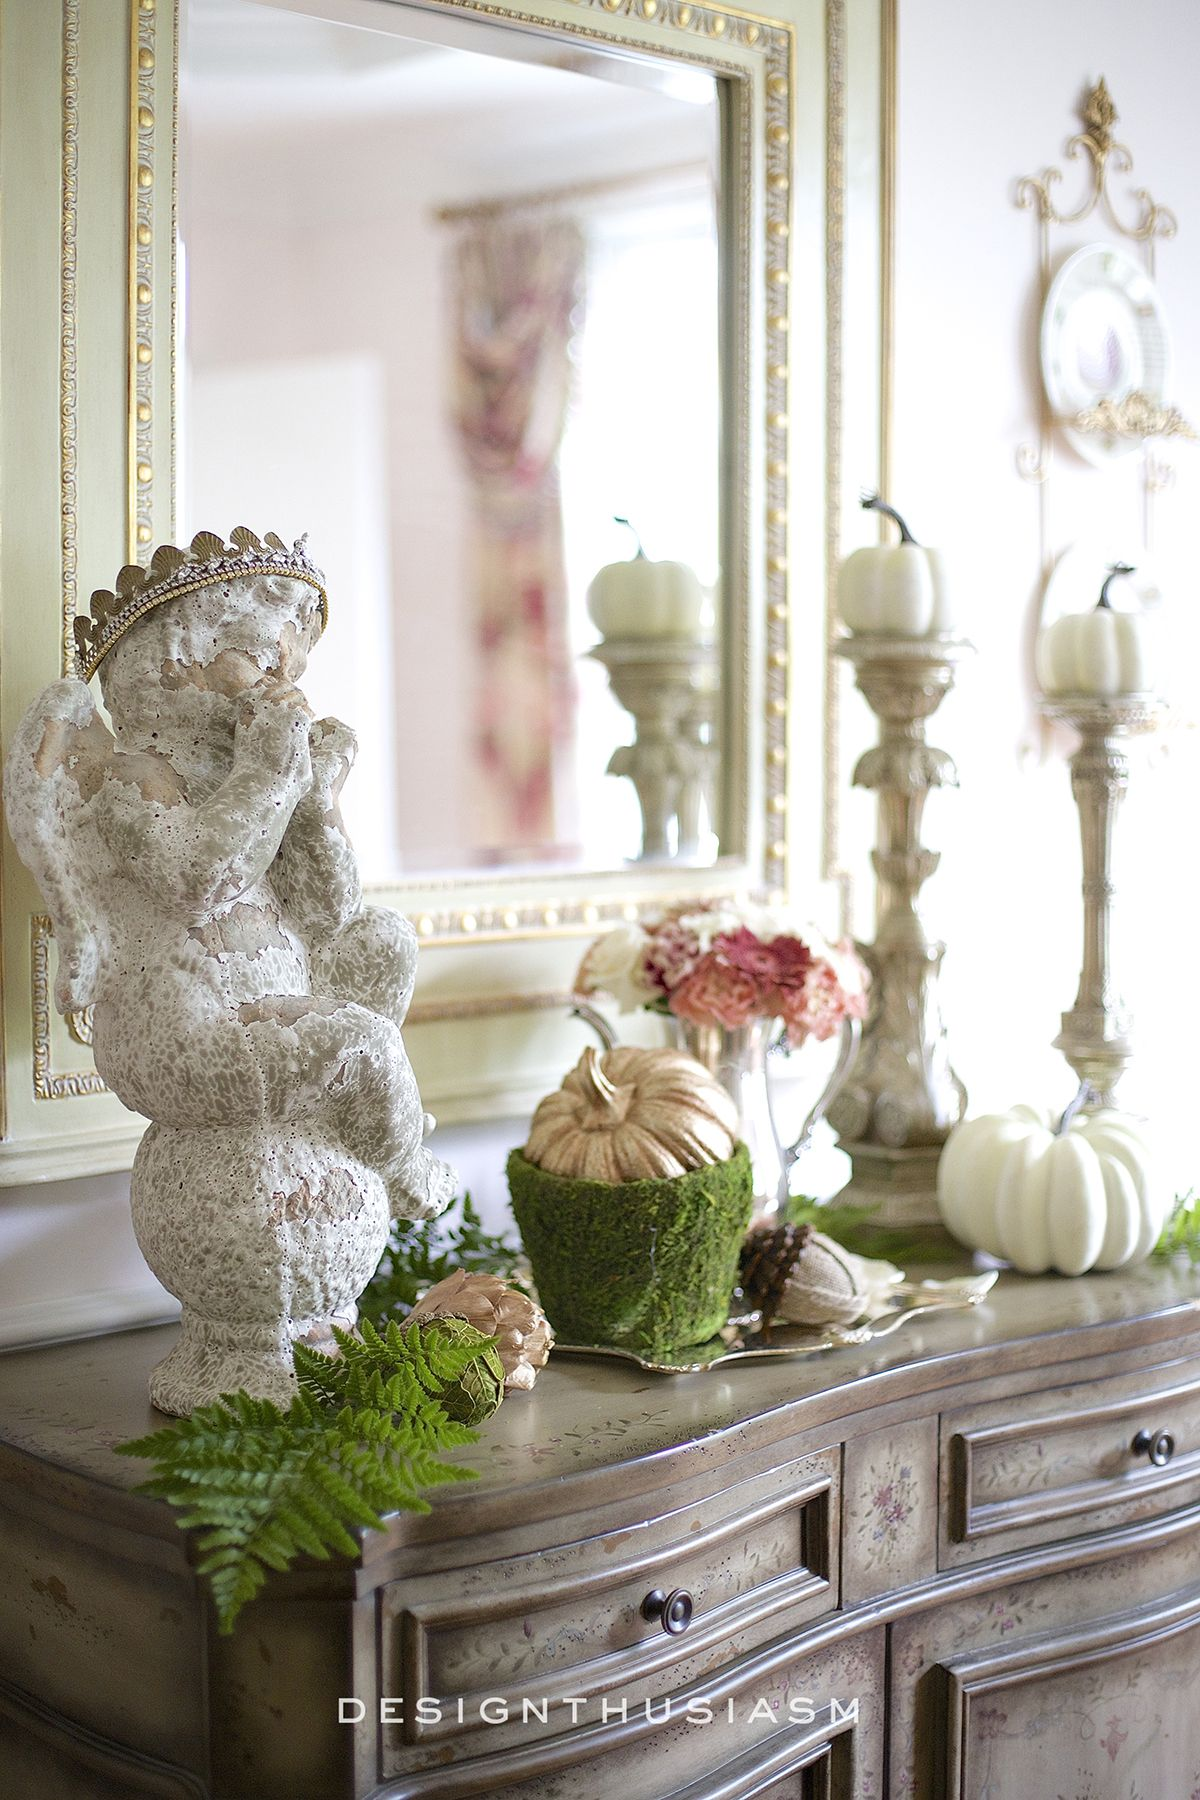 5 Tips For Creating A Fall Vignette In The Dining Room